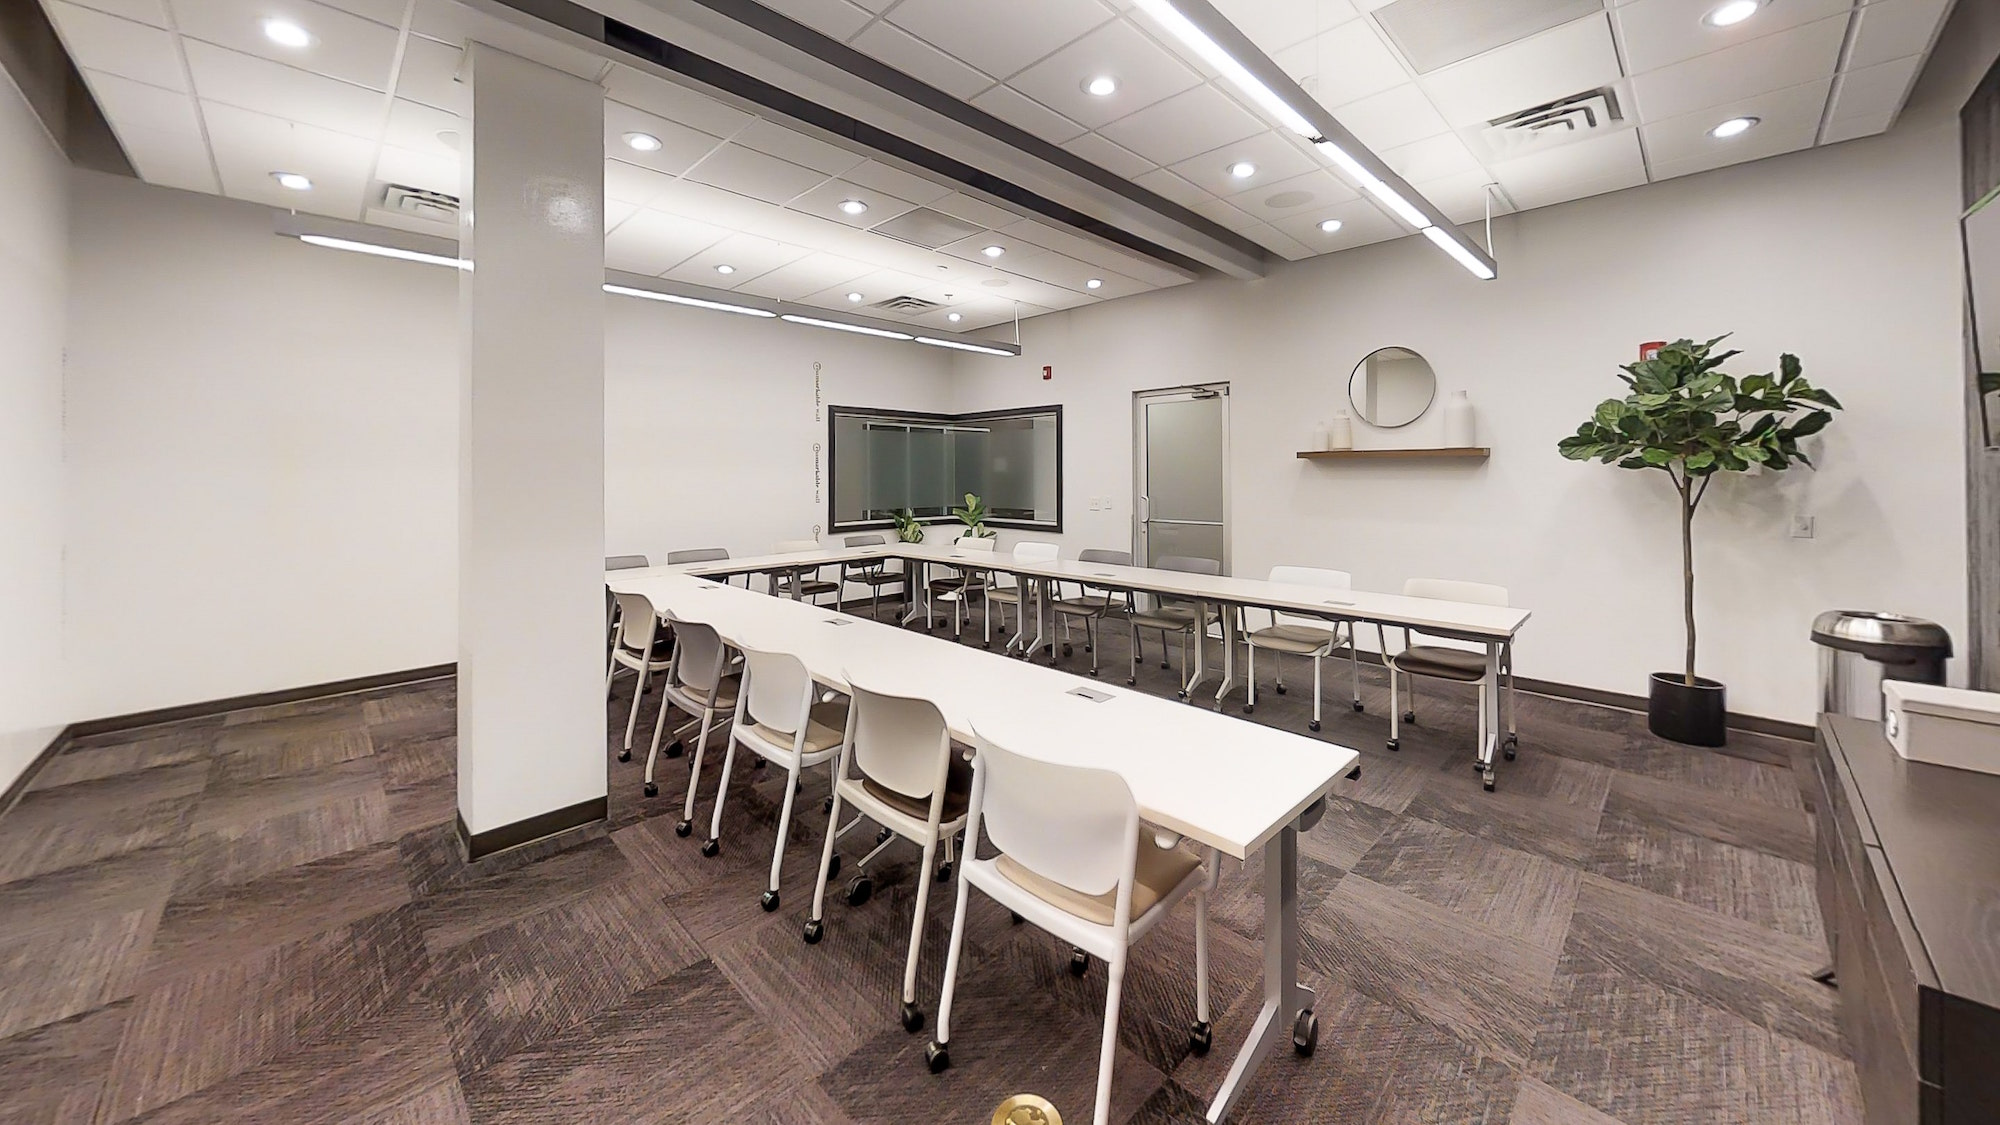 Frosted window and innovative design in Atlanta meeting room